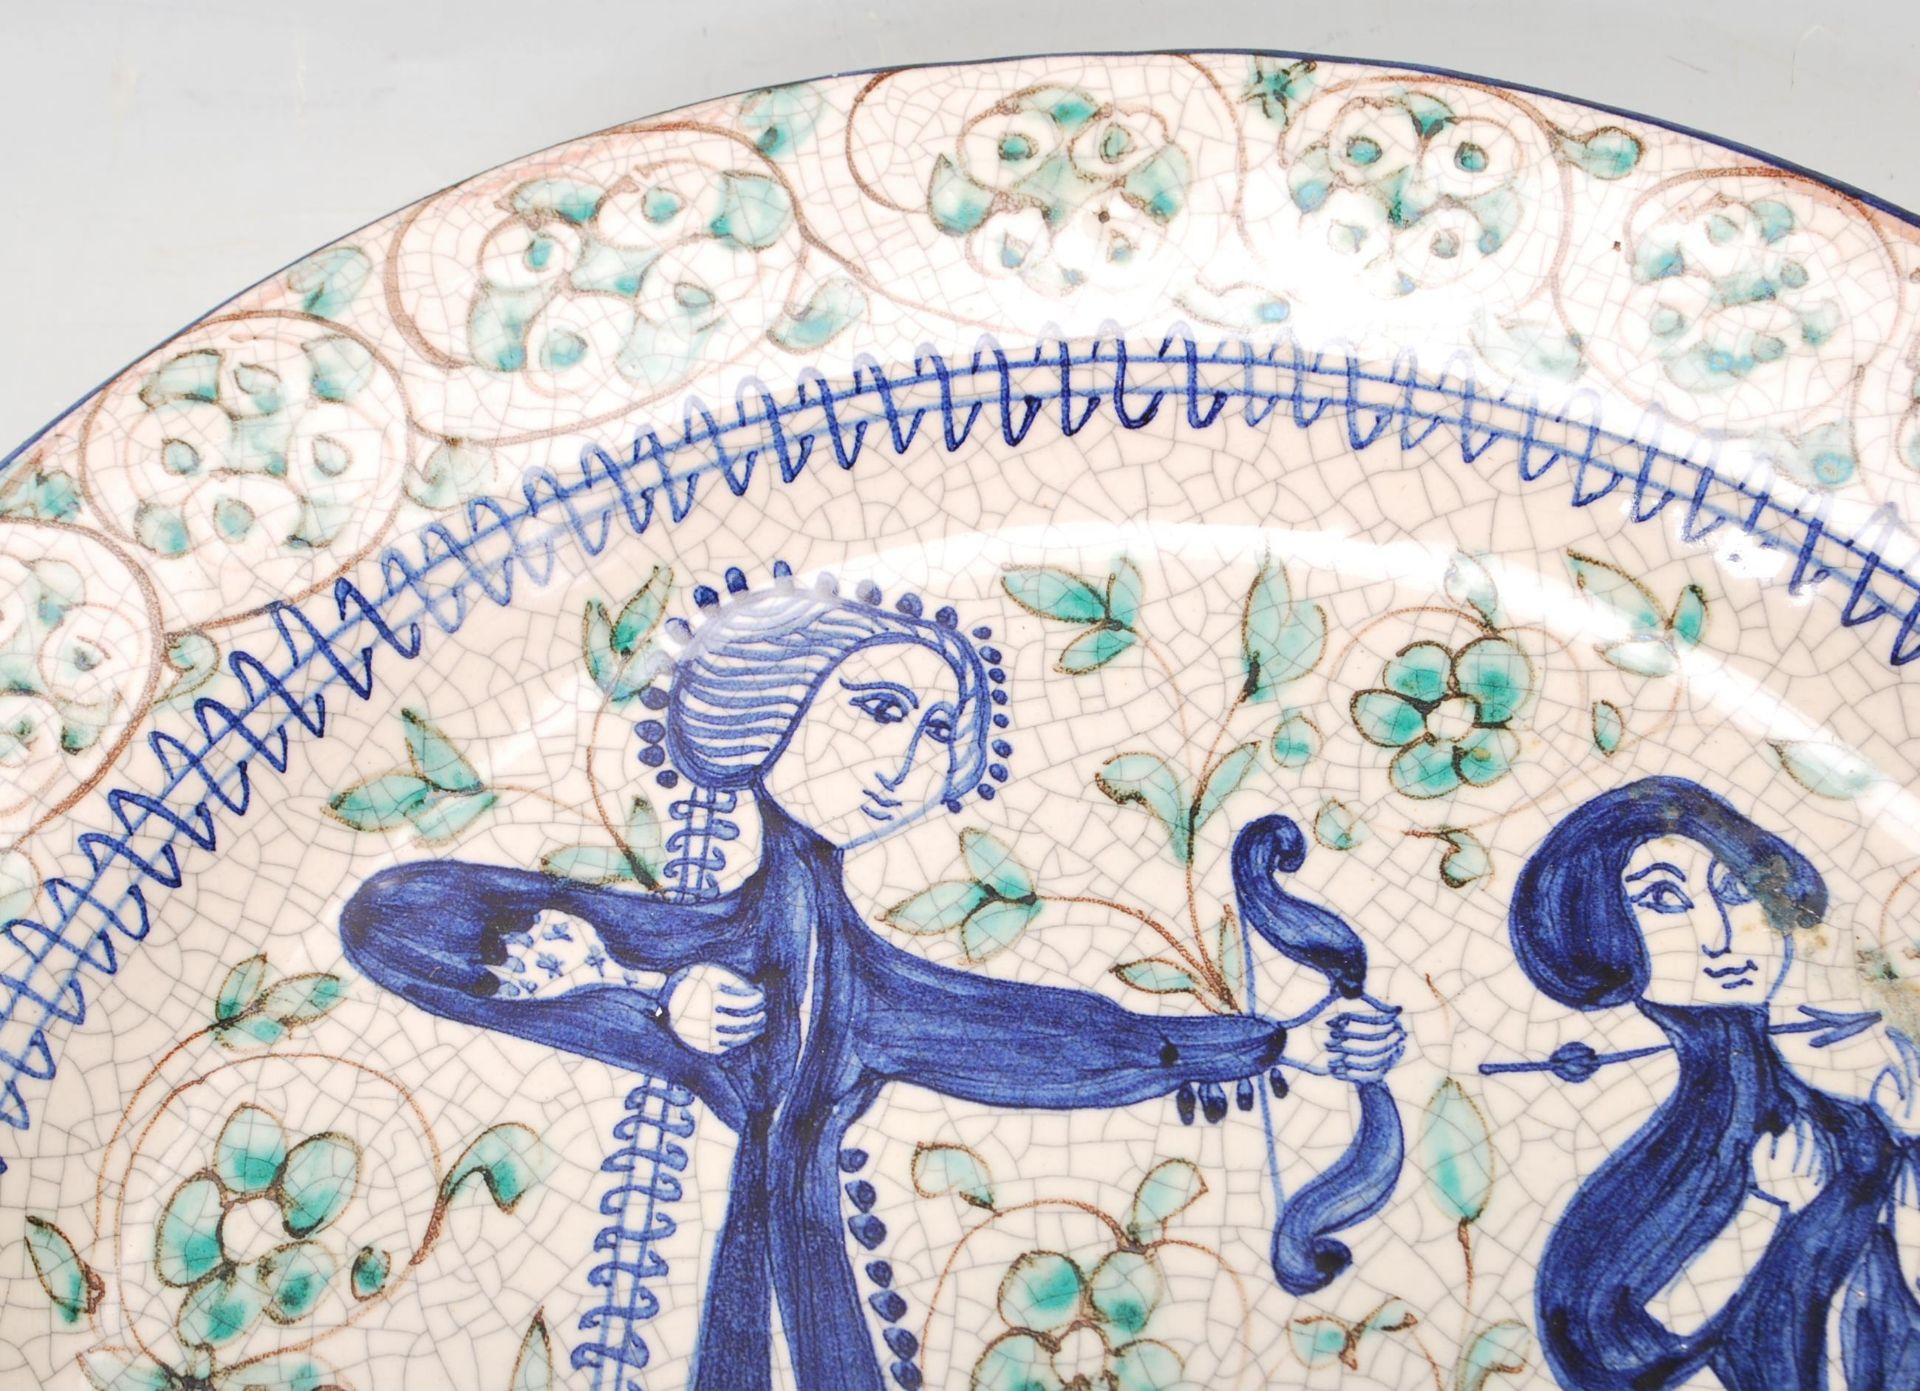 LATE 20TH CENTURY PERSIAN ISLAMIC FAIENCE CHARGER - Image 2 of 7